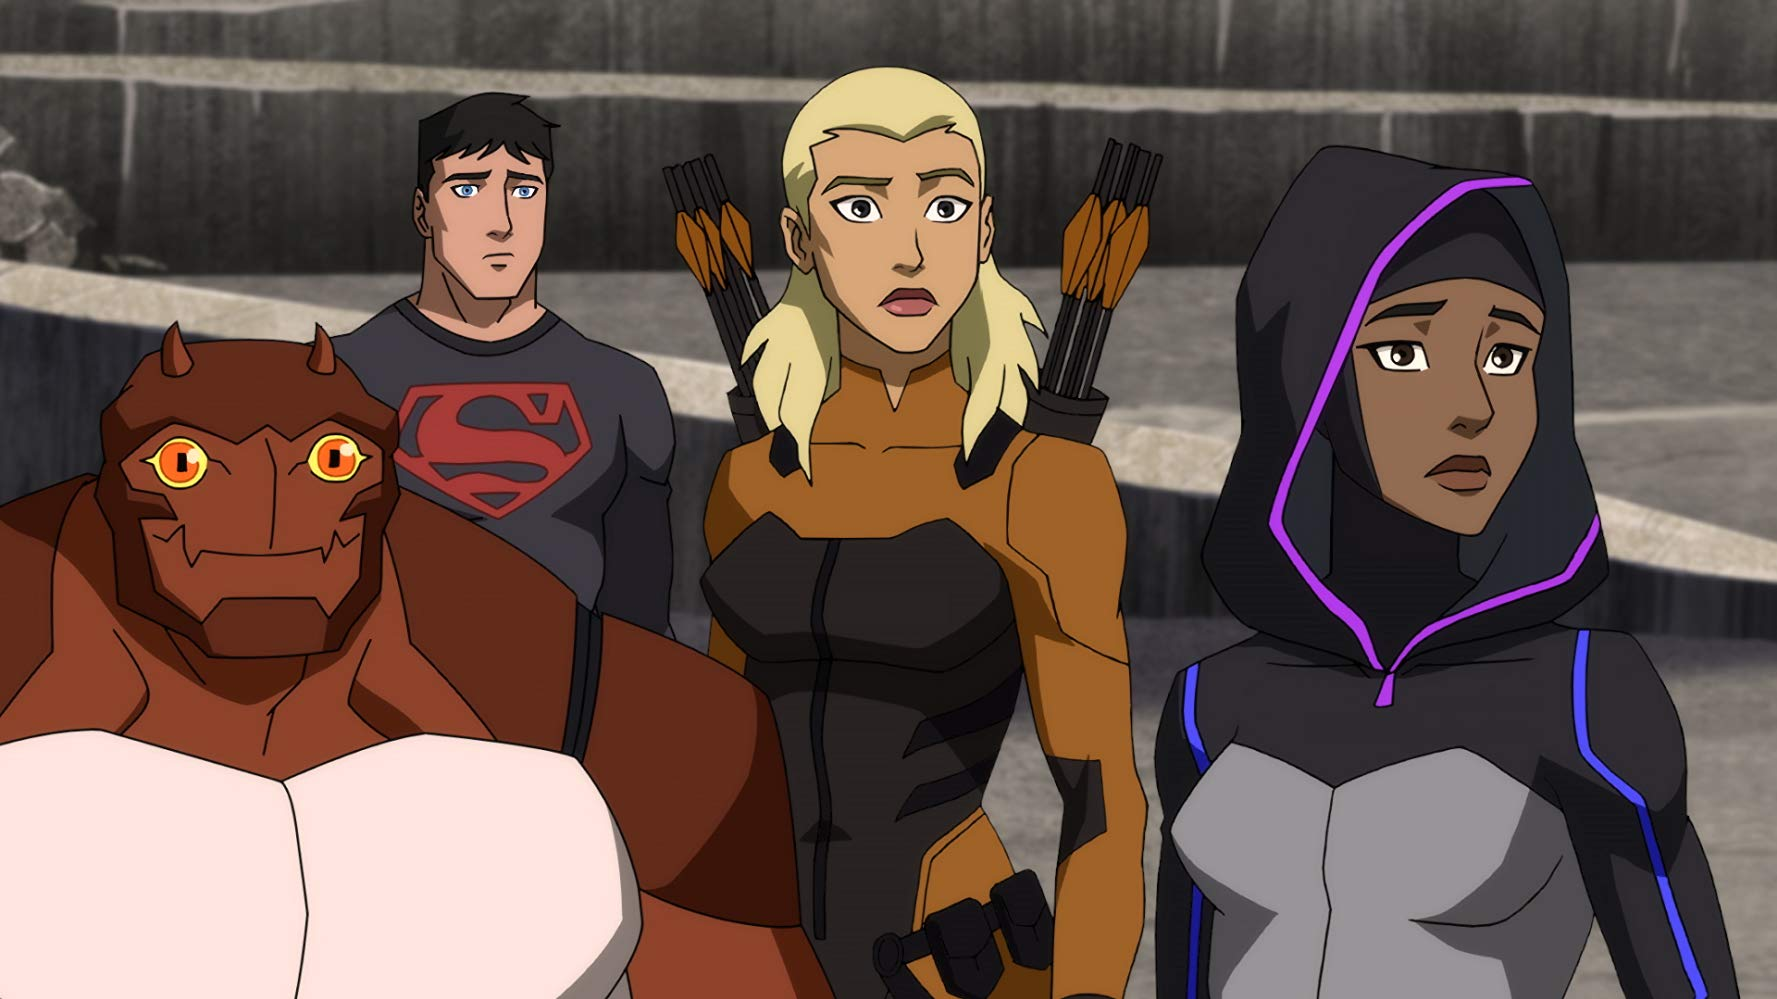 Forager, Superboy, Huntress, and Halo in 'Young Justice: Outsiders'. Source: IMDB